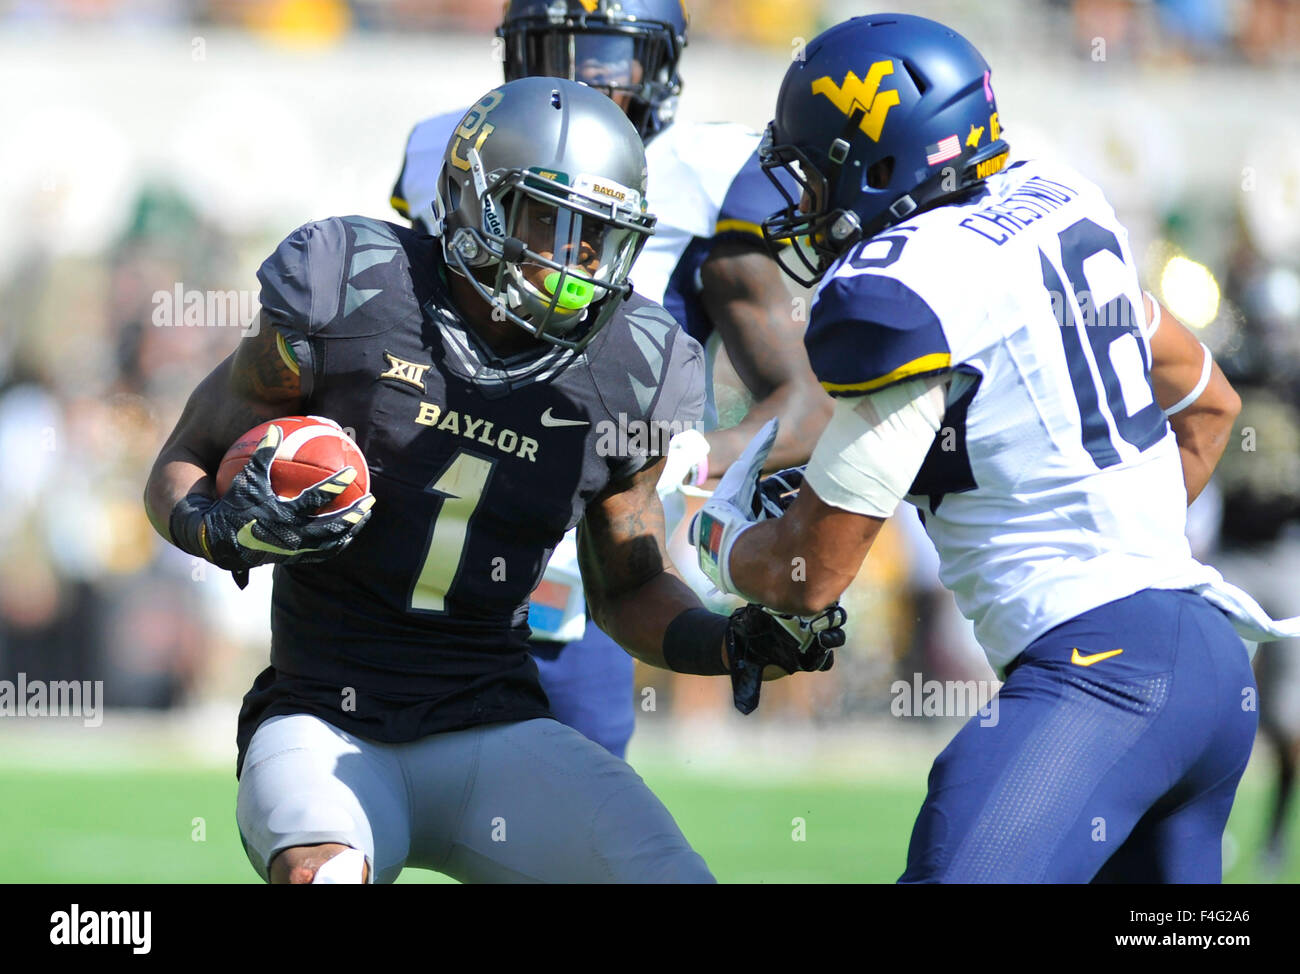 October 17, 2015: Baylor receiver Corey Coleman (1) looks to avoid West Virginia cornerback Terrell Chestnut (16) Stock Photo